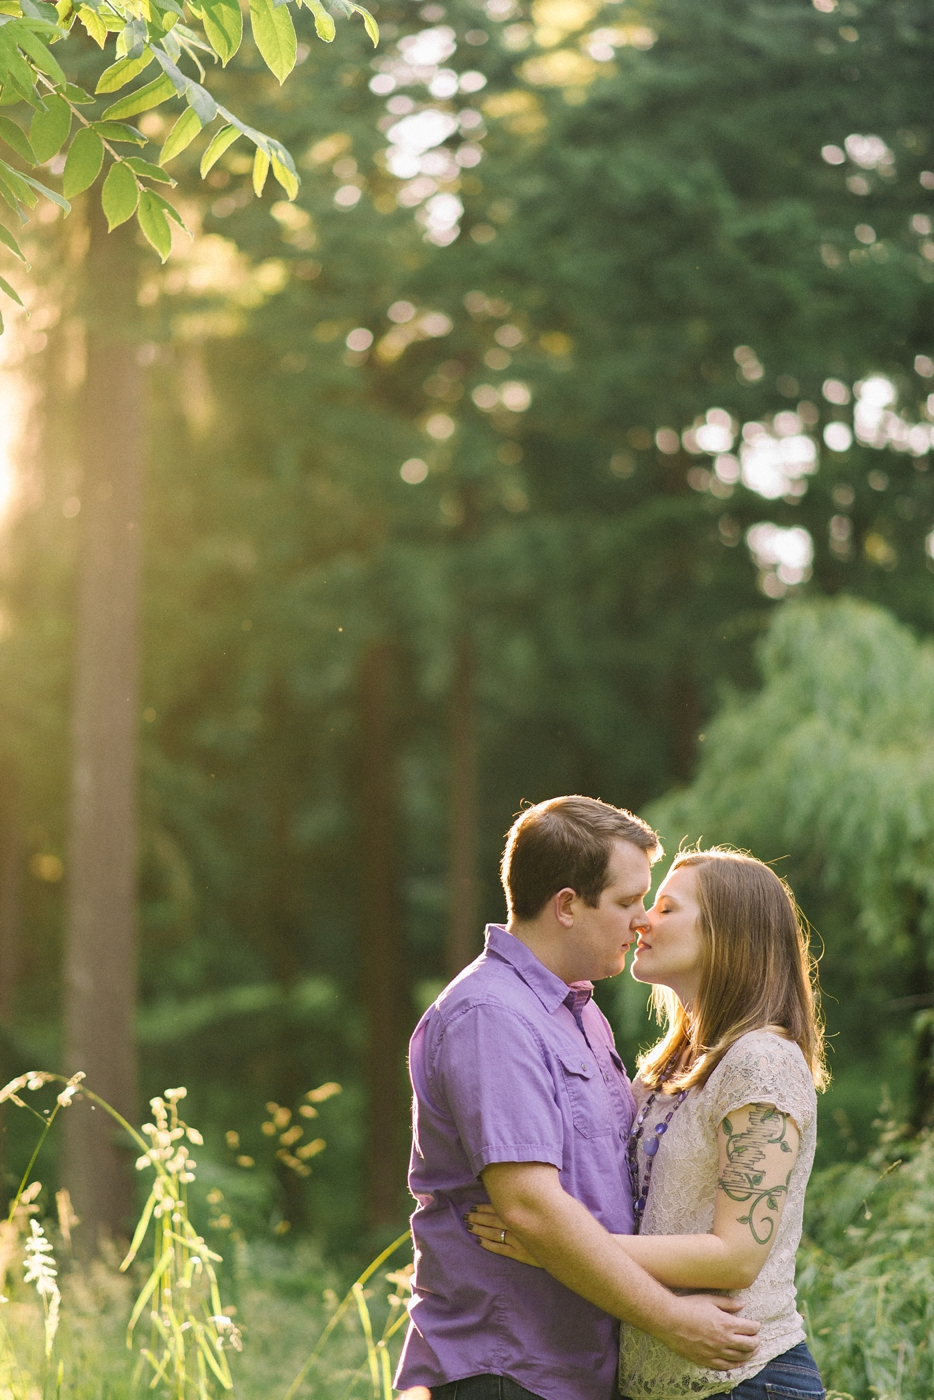 engagement-photography-portland-oregon-hoyt-arboretum-washington-park-romantic-kiss-couples-portraits-nature-natural-light-forest-field-shelley-marie-photo-16